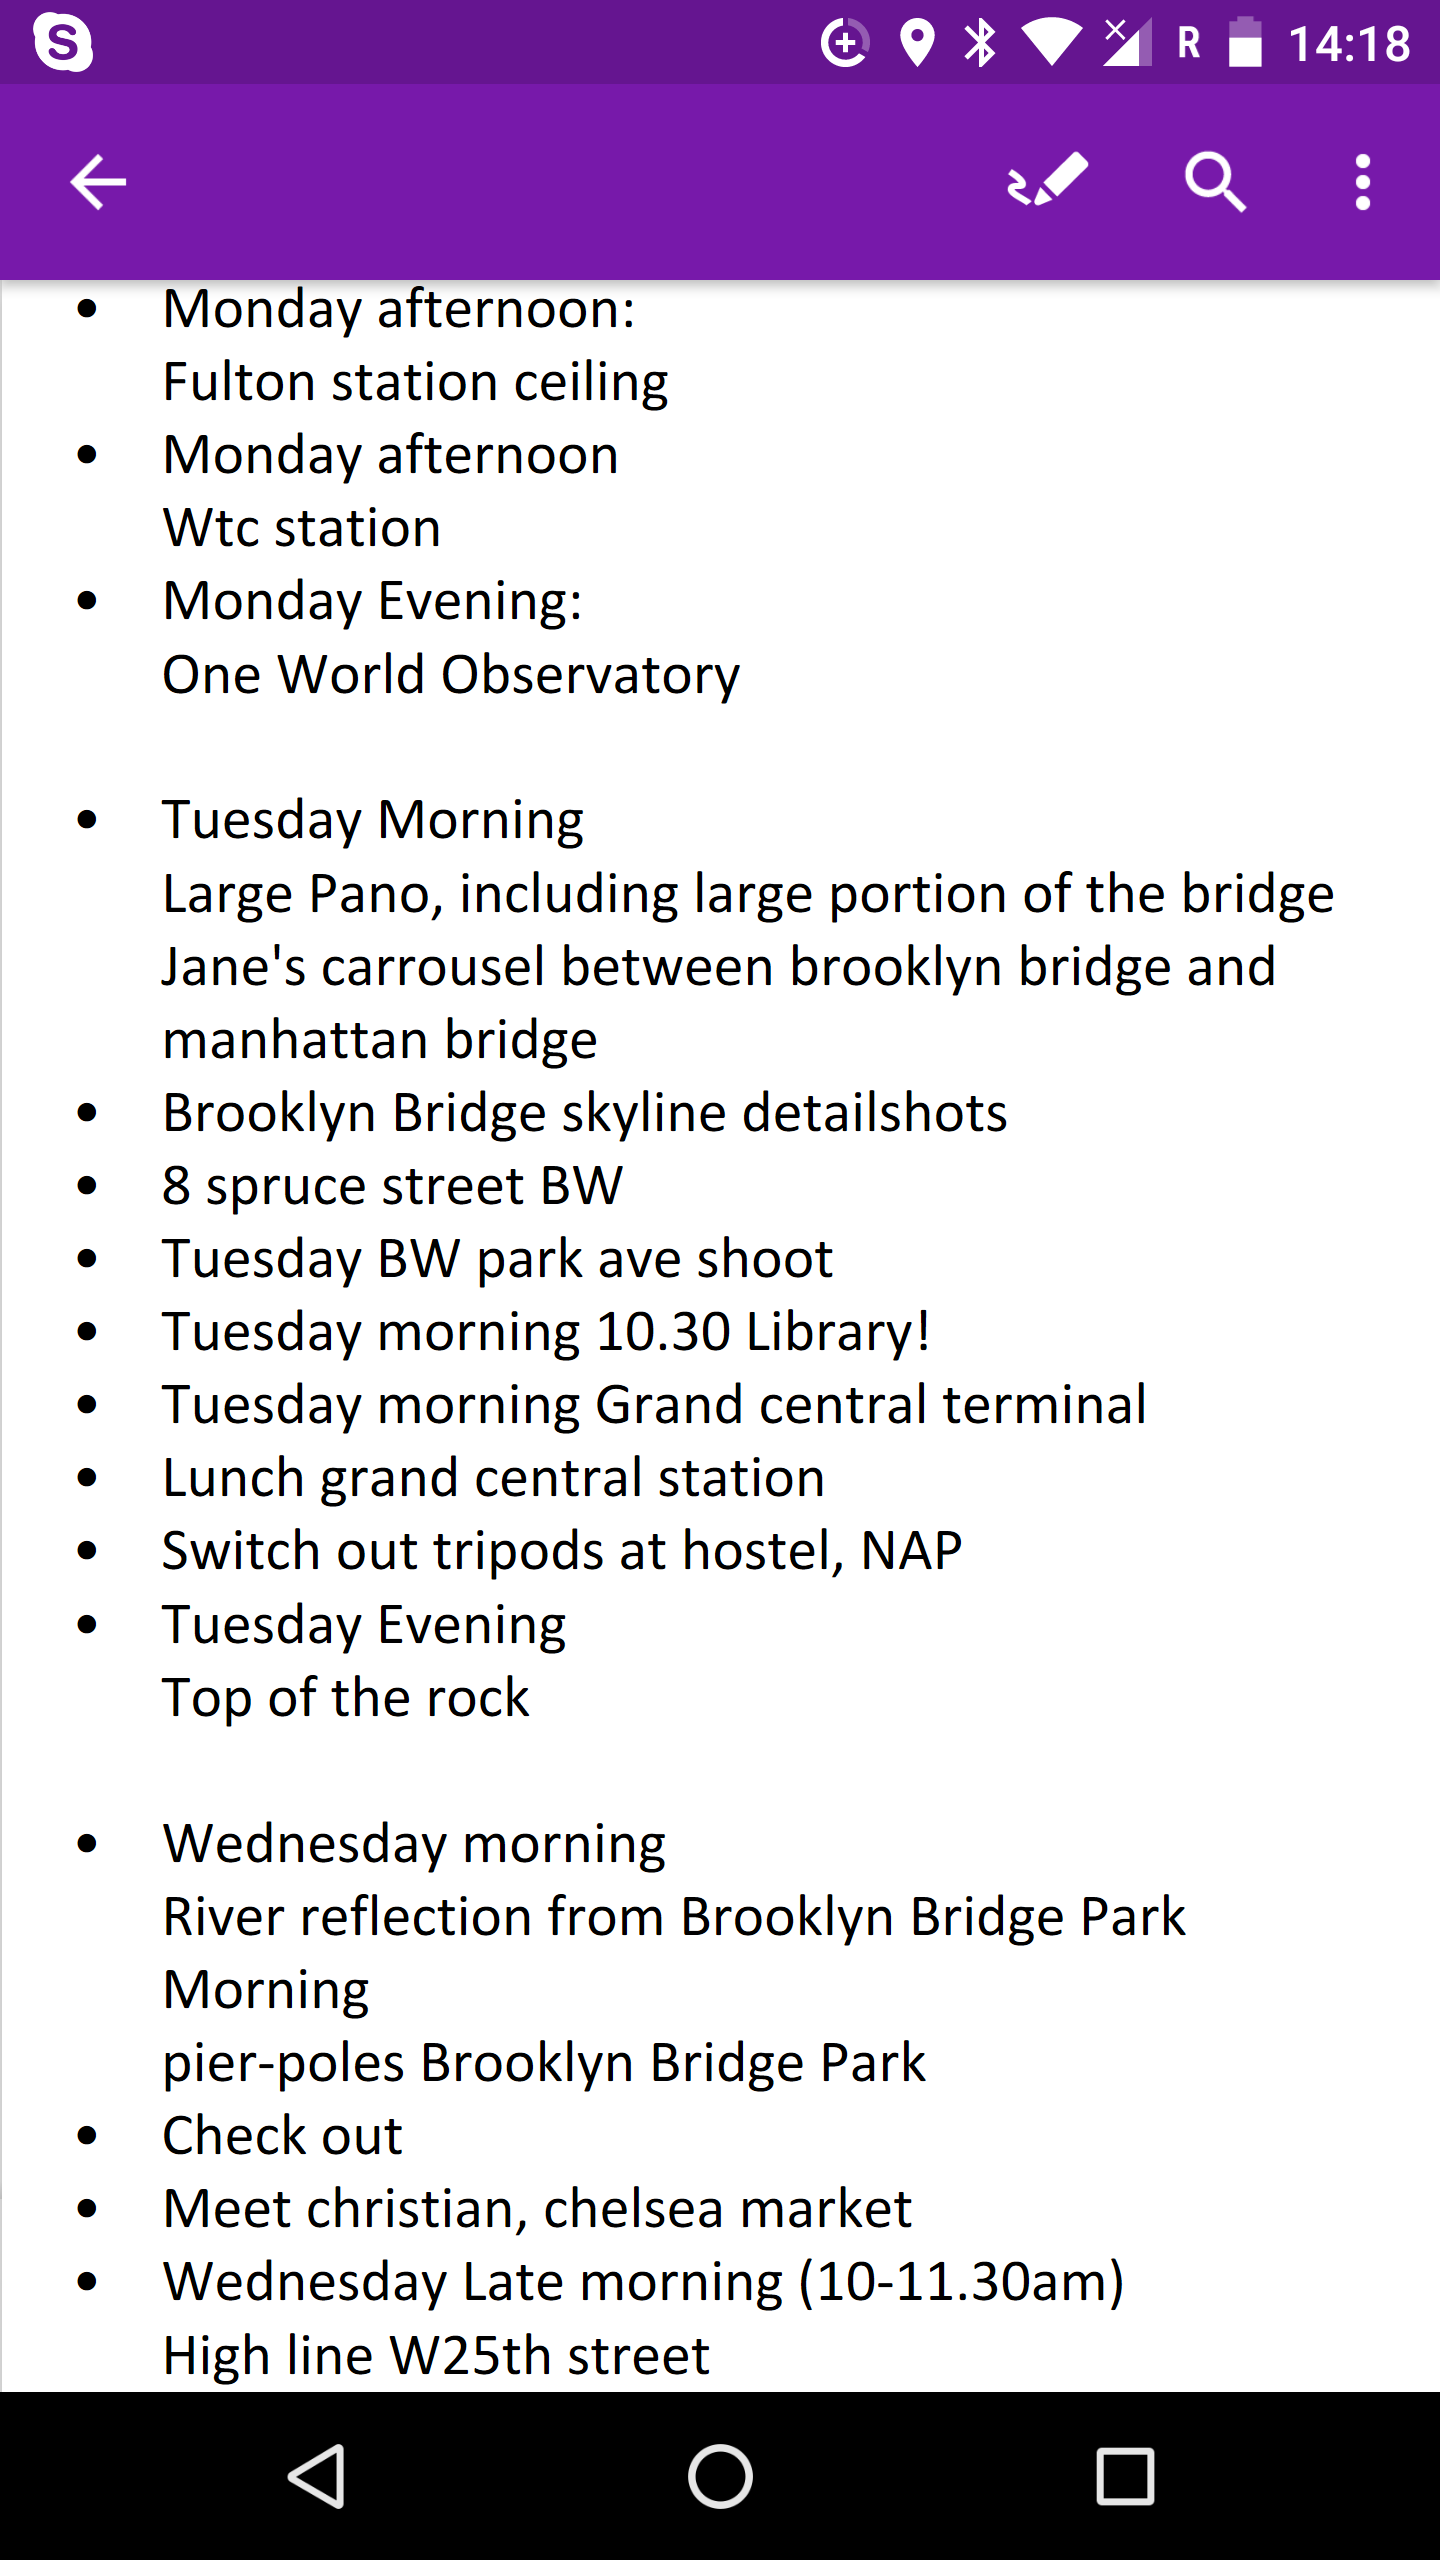 My shot-list for a total of 48 hours in New York.